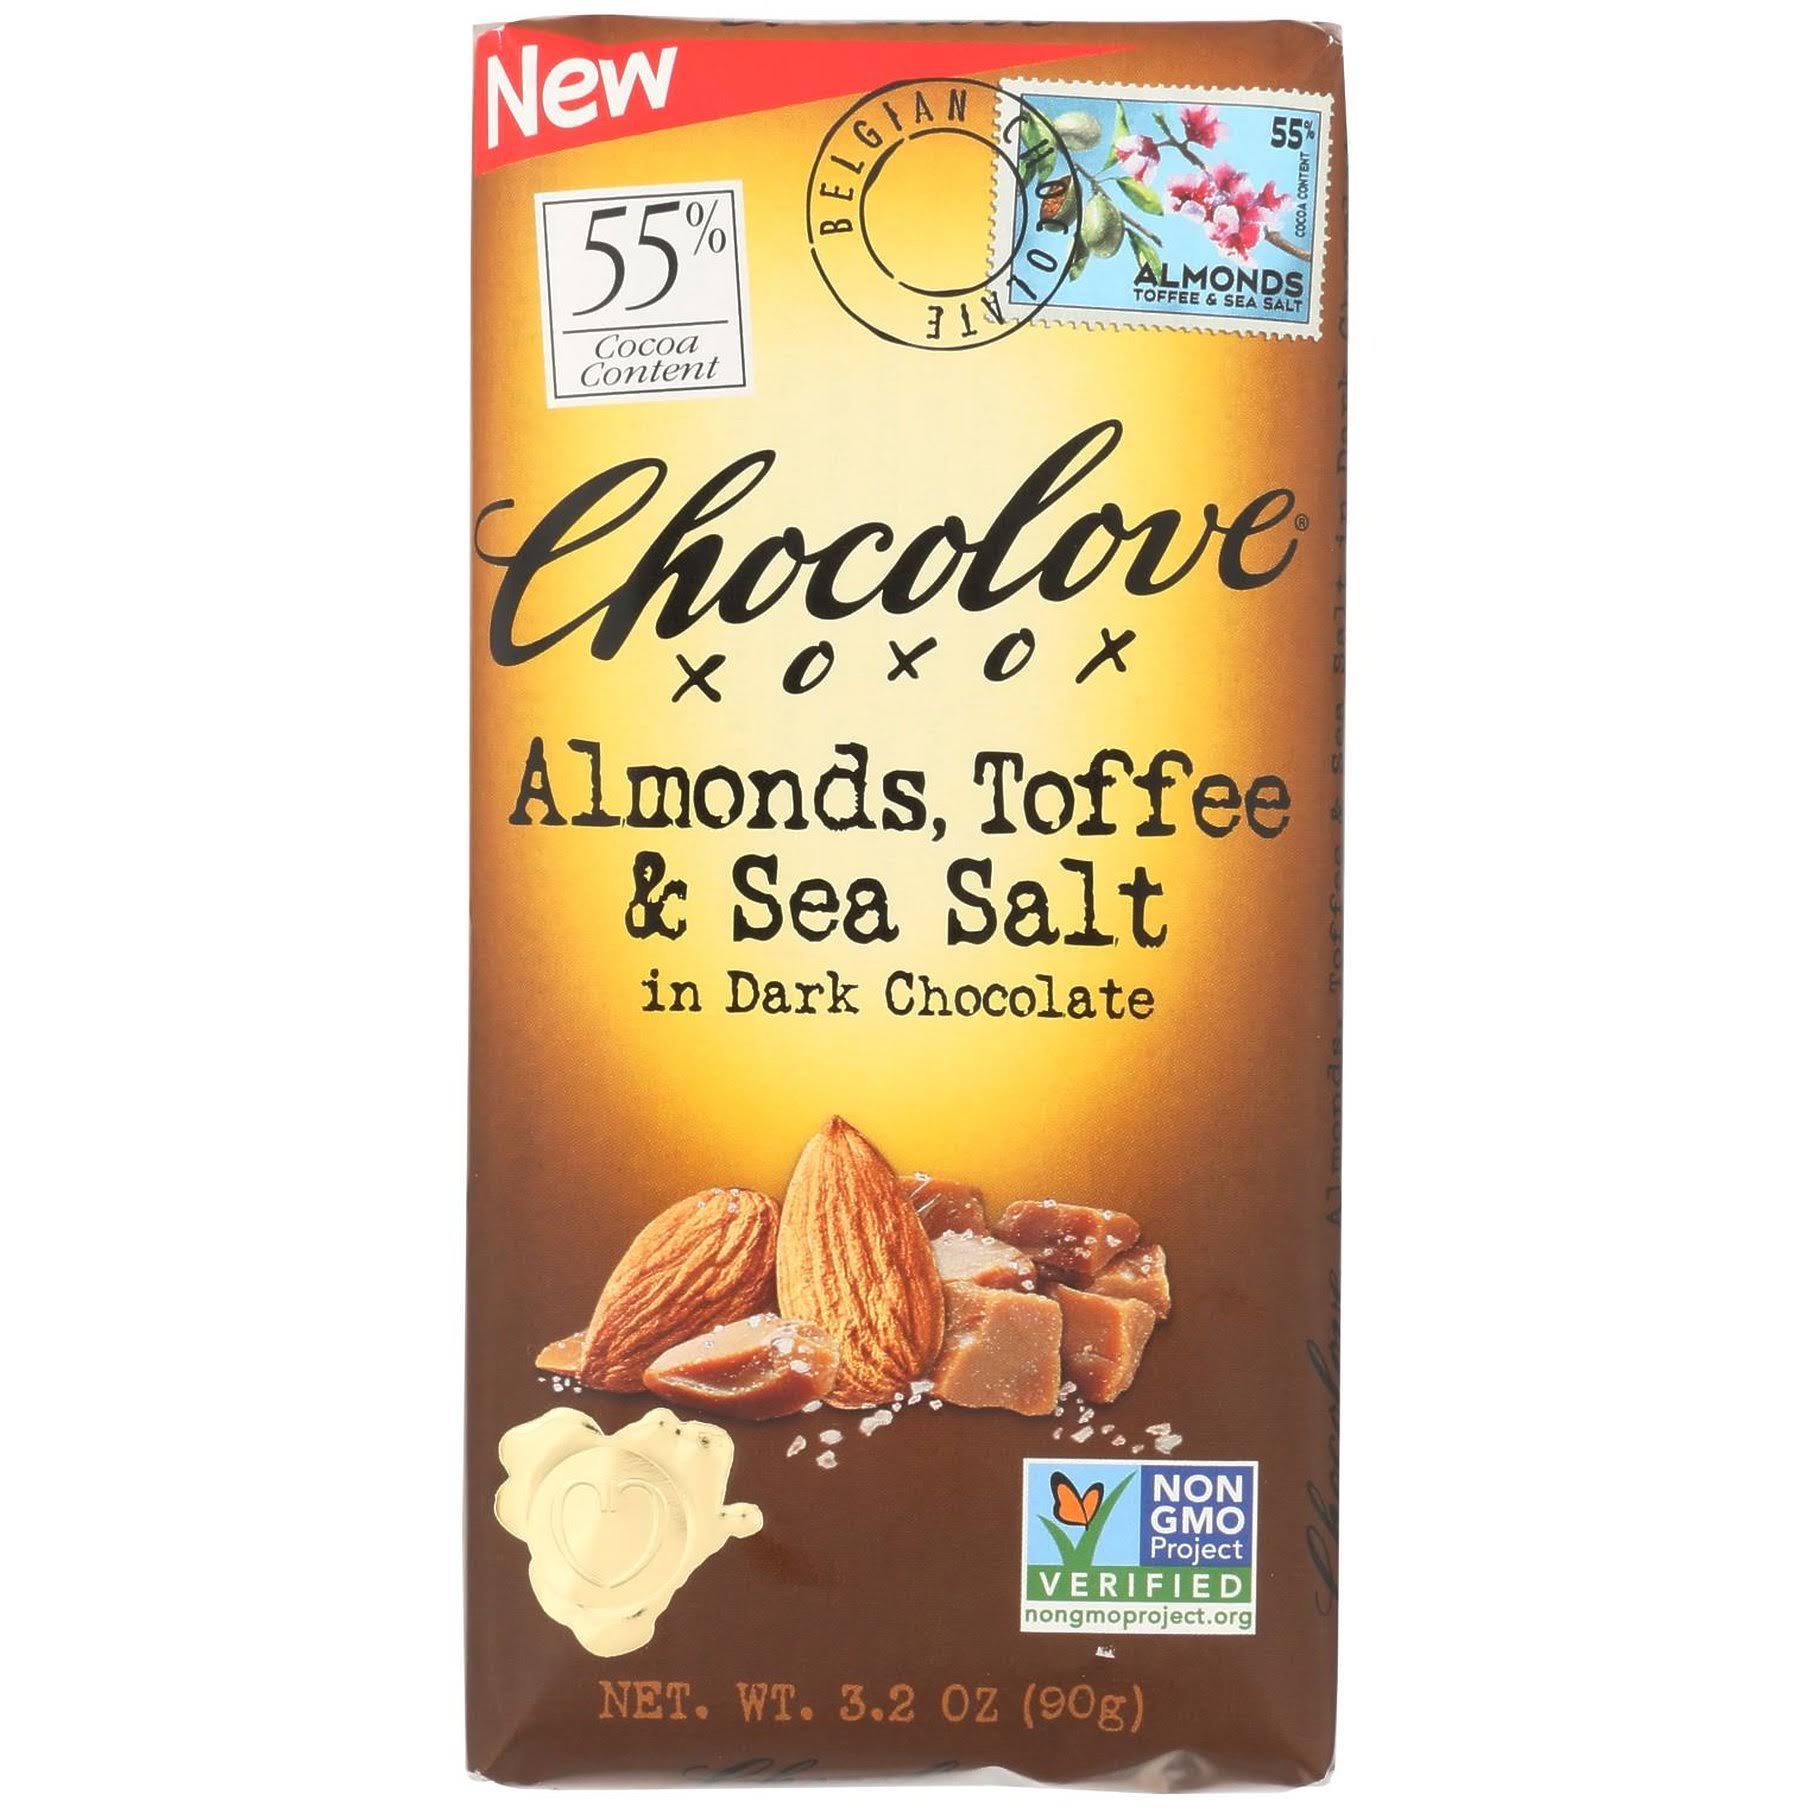 Chocolove Chocolate, Dark, Almonds, Toffee & Sea Salt, 55% Cocoa - 3.2 oz